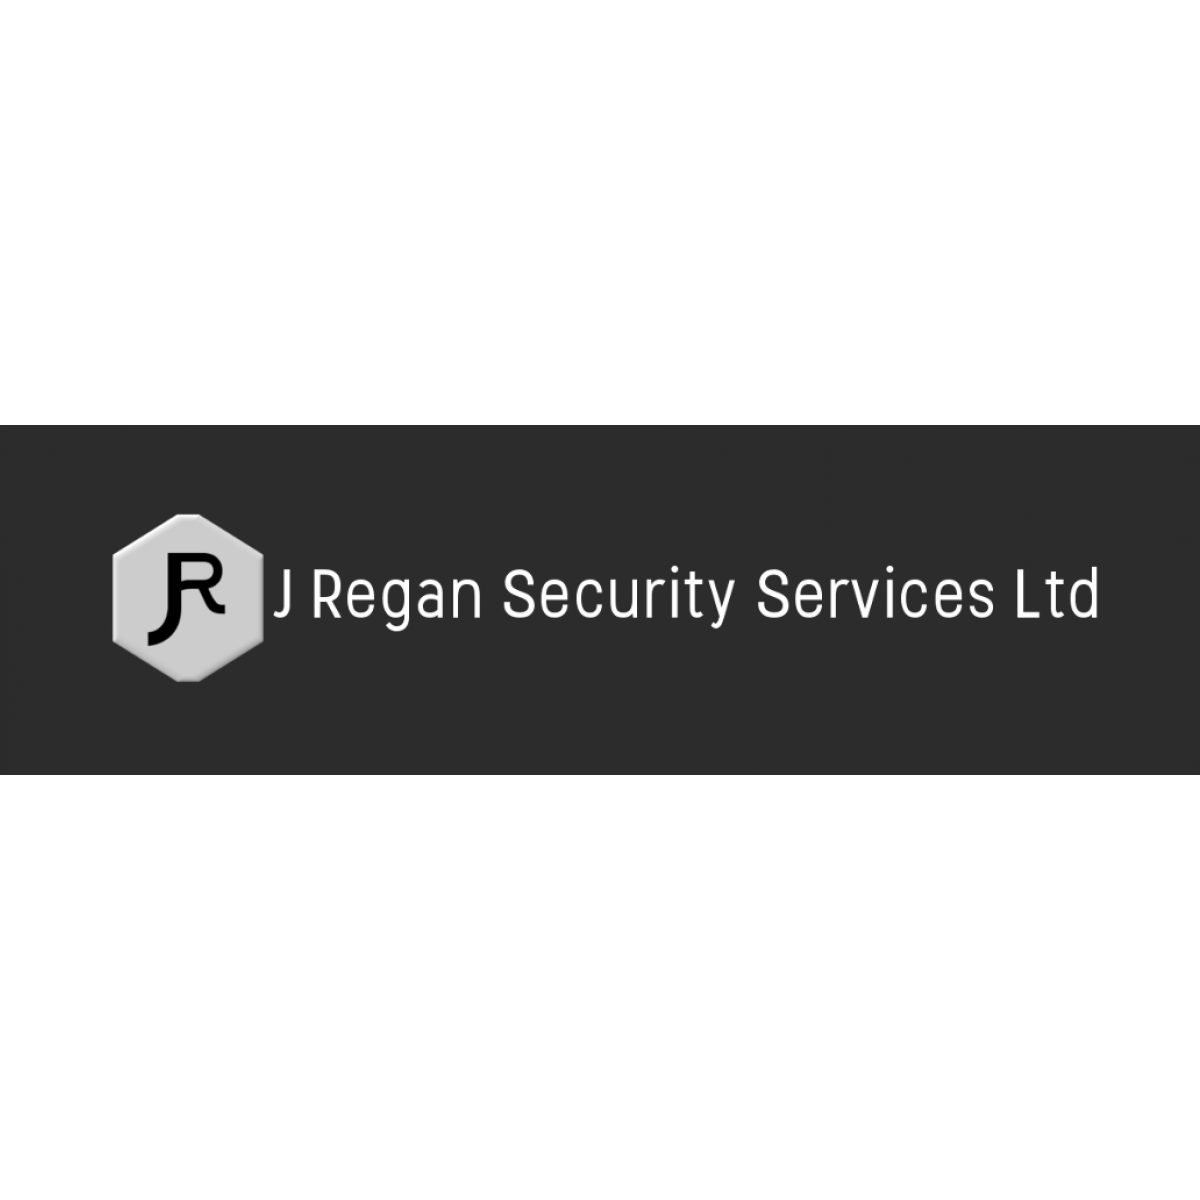 J Regan Security Services Ltd